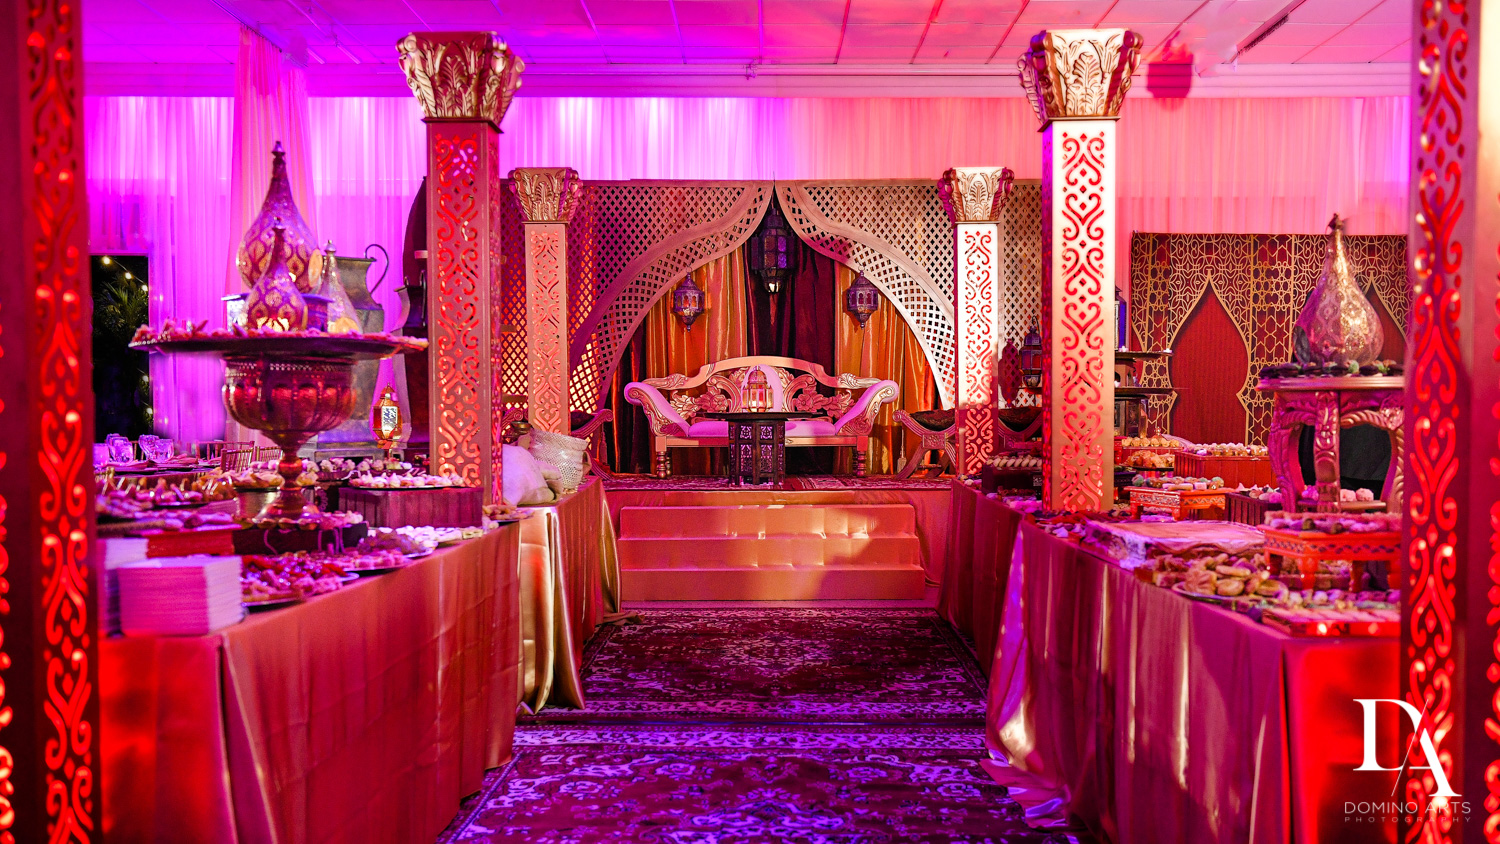 room decor at Authentic Morrocan Jewish Henna Party by Domino Arts Photography